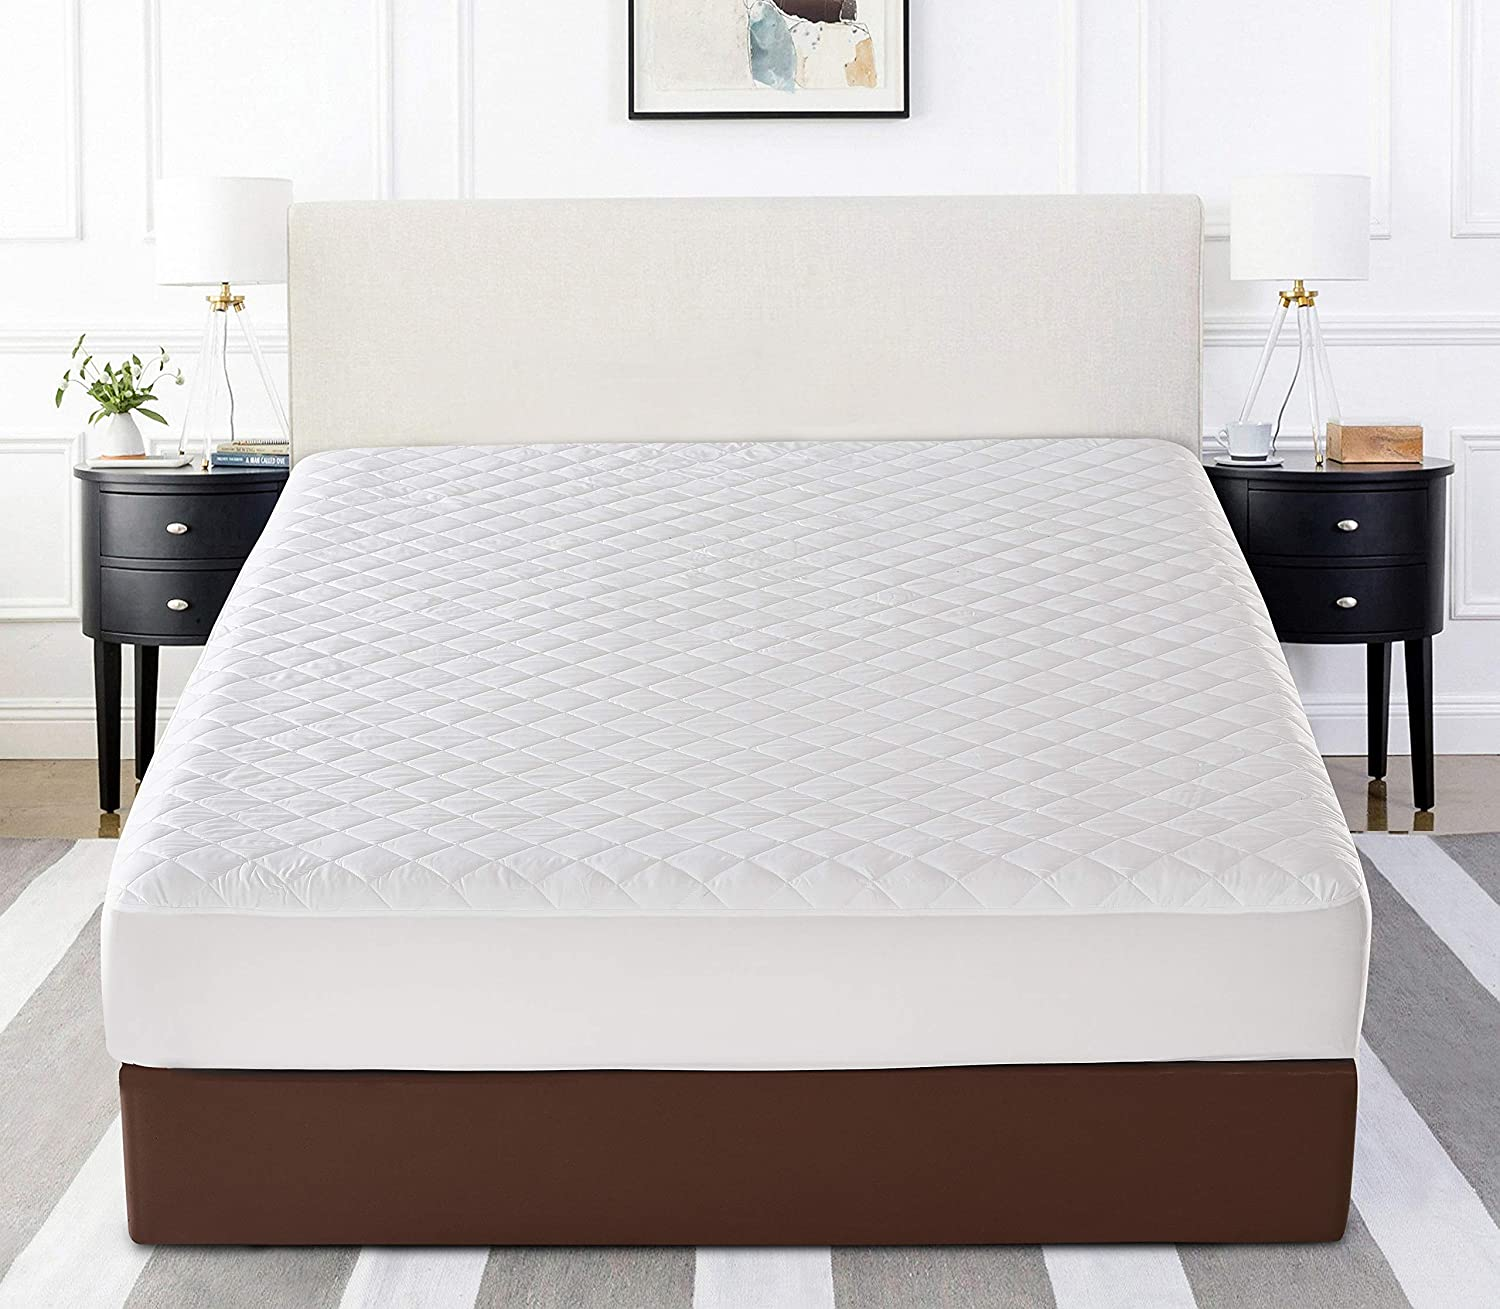 Home Beyond Premium Quilted Mattress Pad Protector - Waterproof Fitted Mattress Cover with Deep Pocket Knitted Skirt Stretches up to 18 Inches - Mattress Topper (White, Twin)